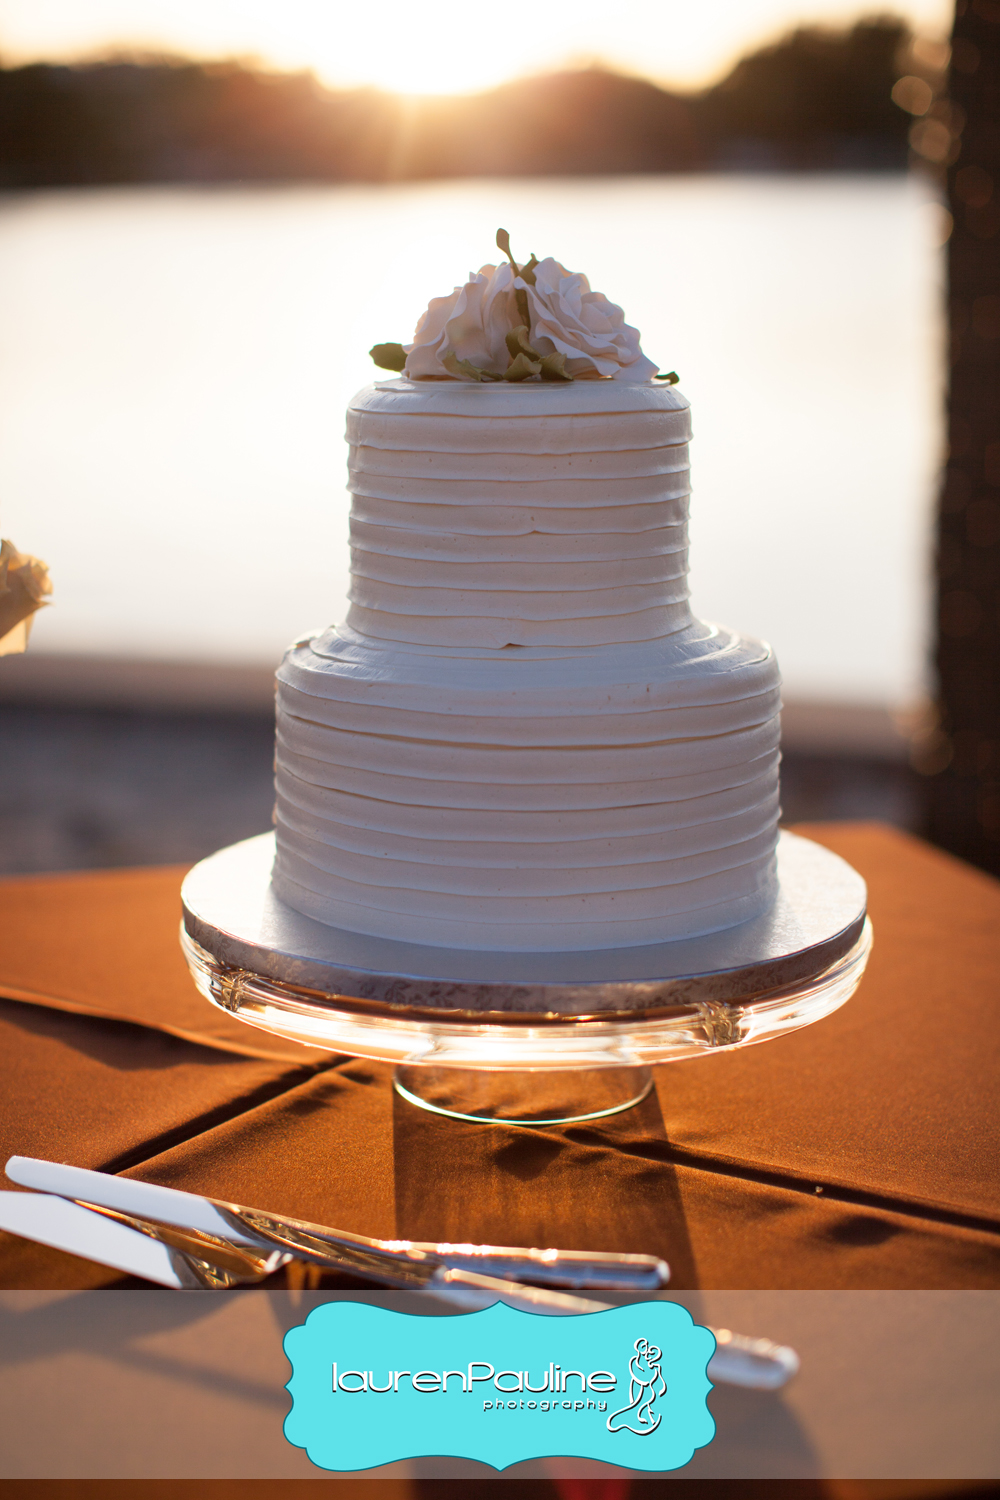 The classic and simple wedding cake boasted ribbed buttercream icing and sugar flowers